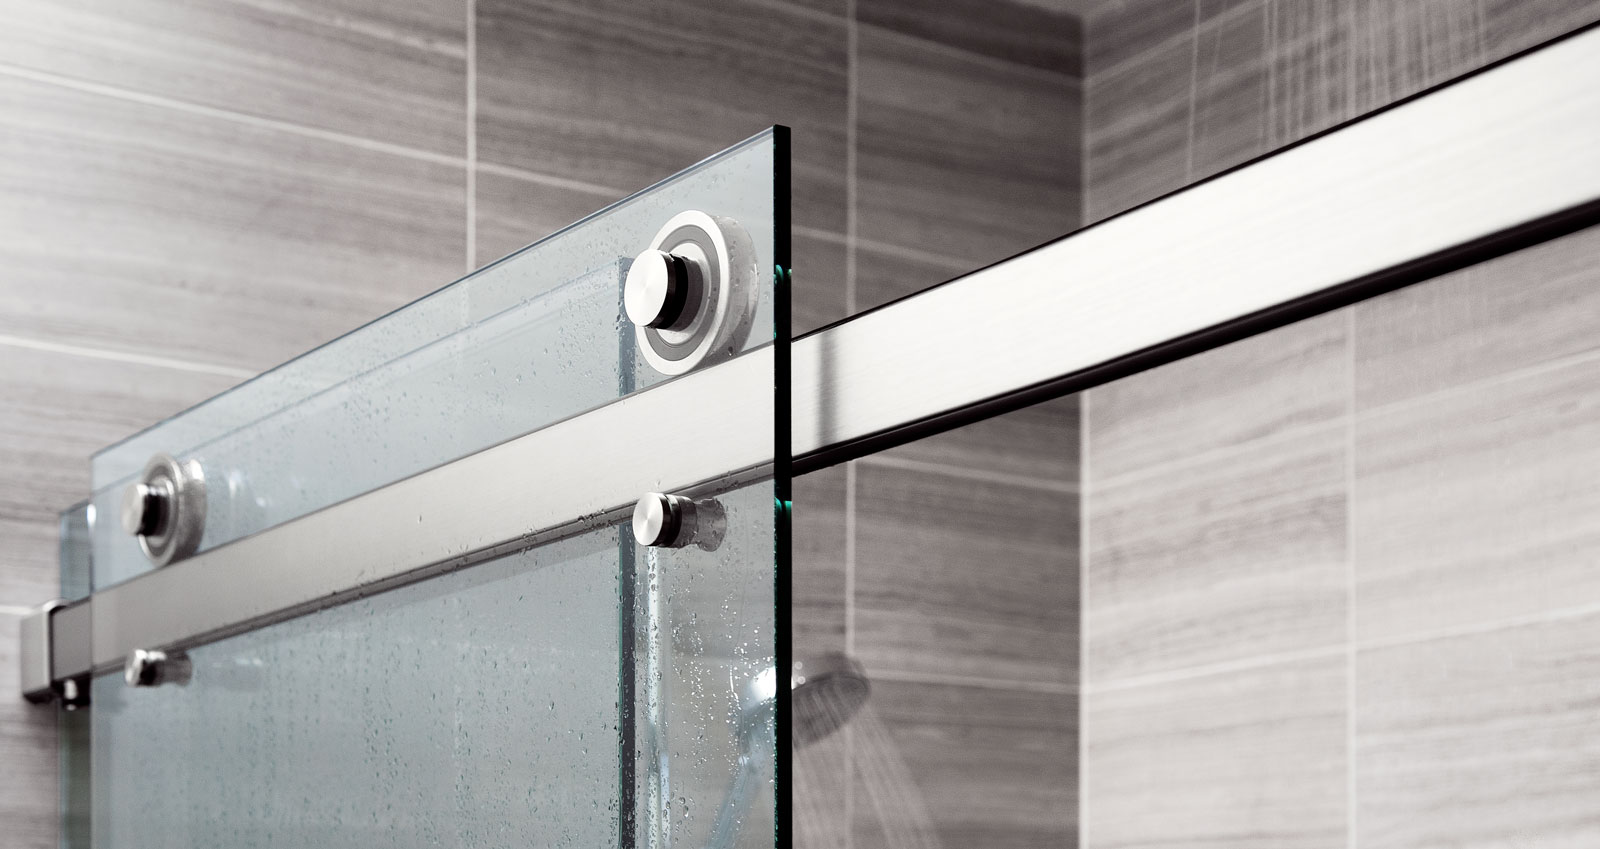 Easily the cleanest-looking system available for sliding glass shower enclosures.